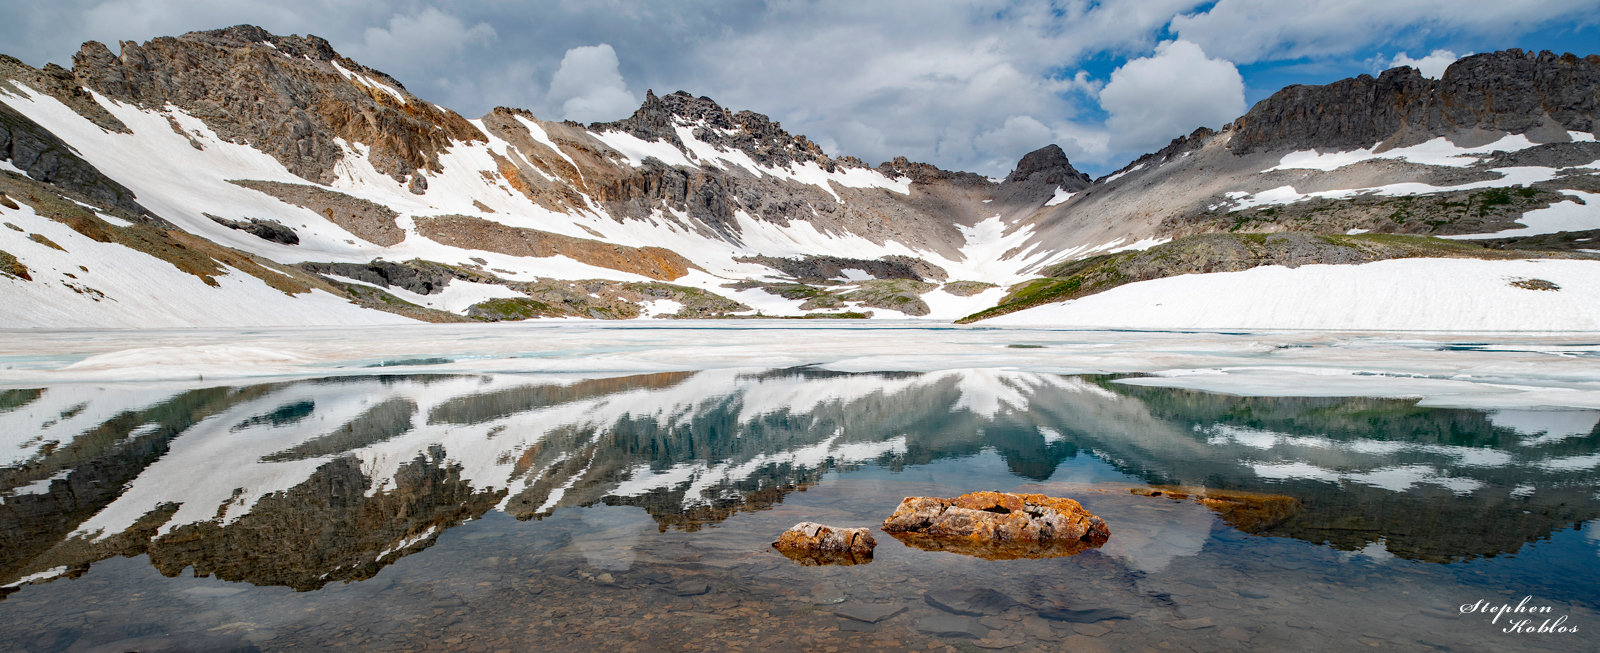 Columbine Lake in summer 2019  Limited Edition of 100